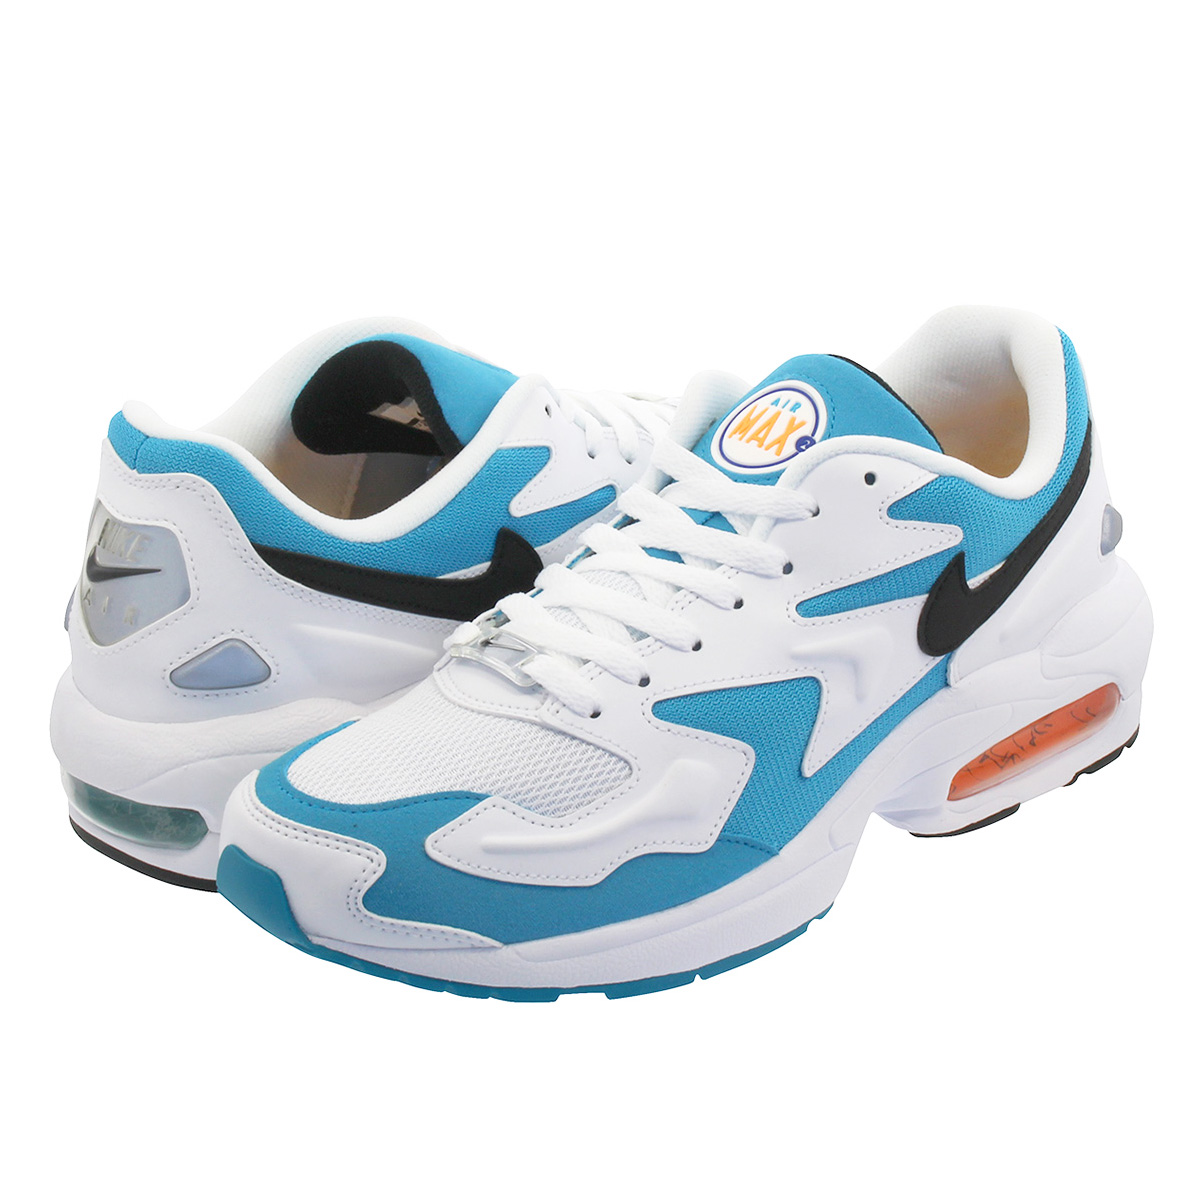 NIKE AIR MAX 2 LIGHT ナイキ エア マックス スクエア ライト WHITE/BLACK/BLUE LAGOON/LASER ORANGE ao1741-100